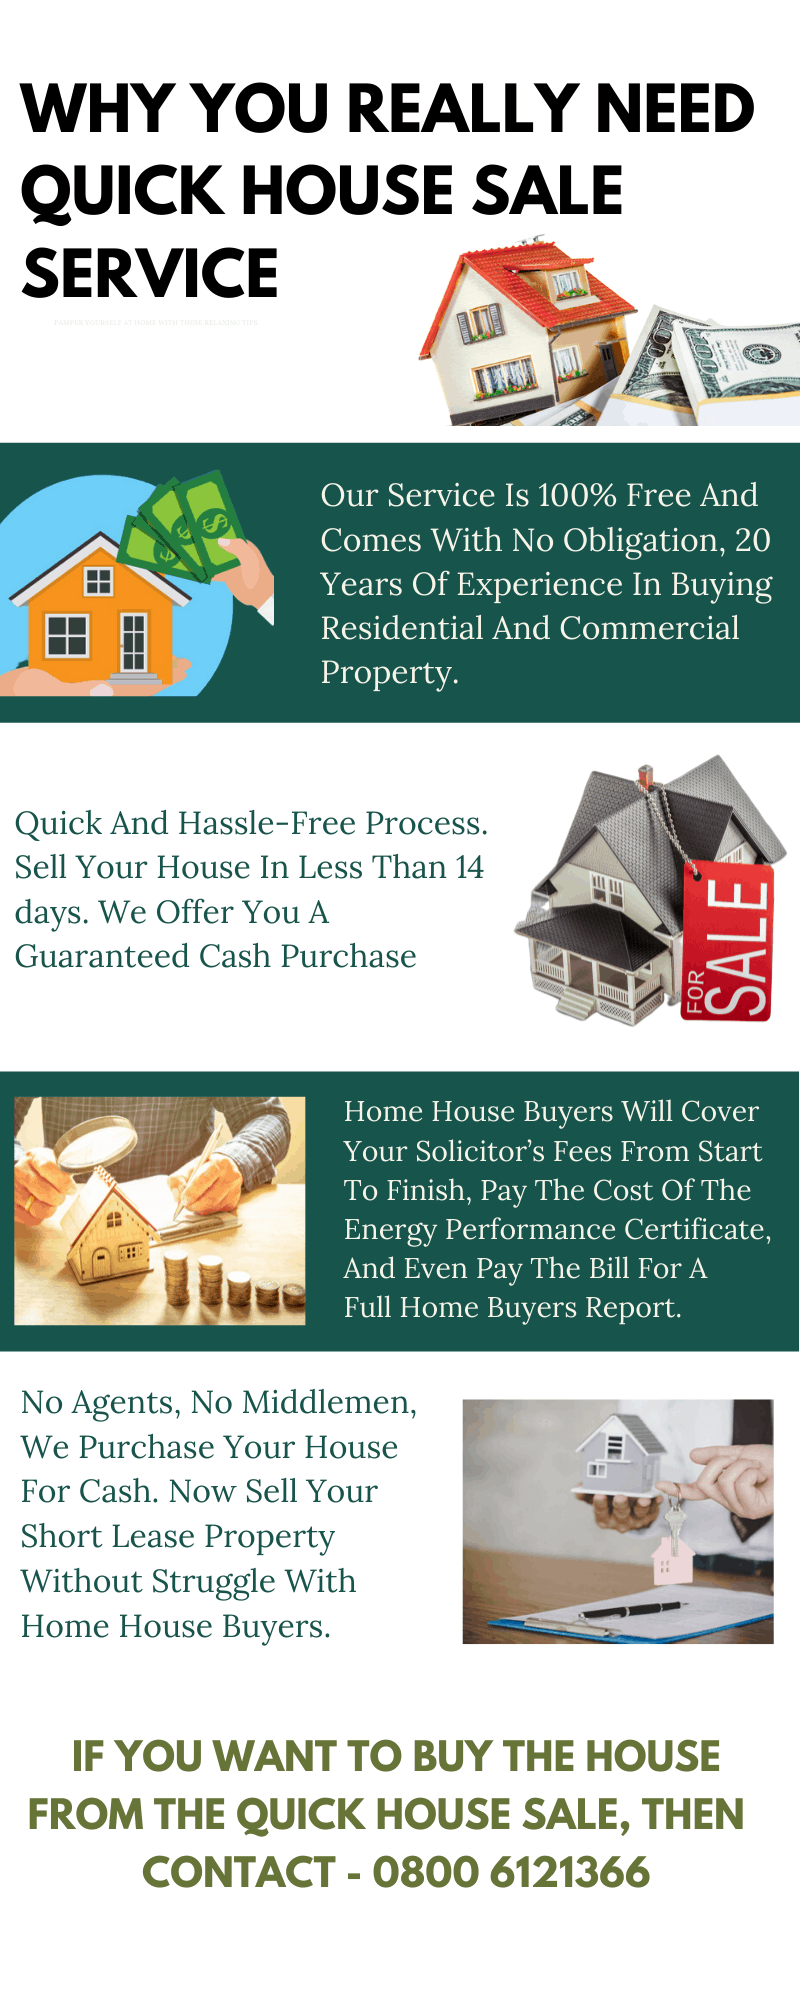 Why You Really Need Quick House Sale Service